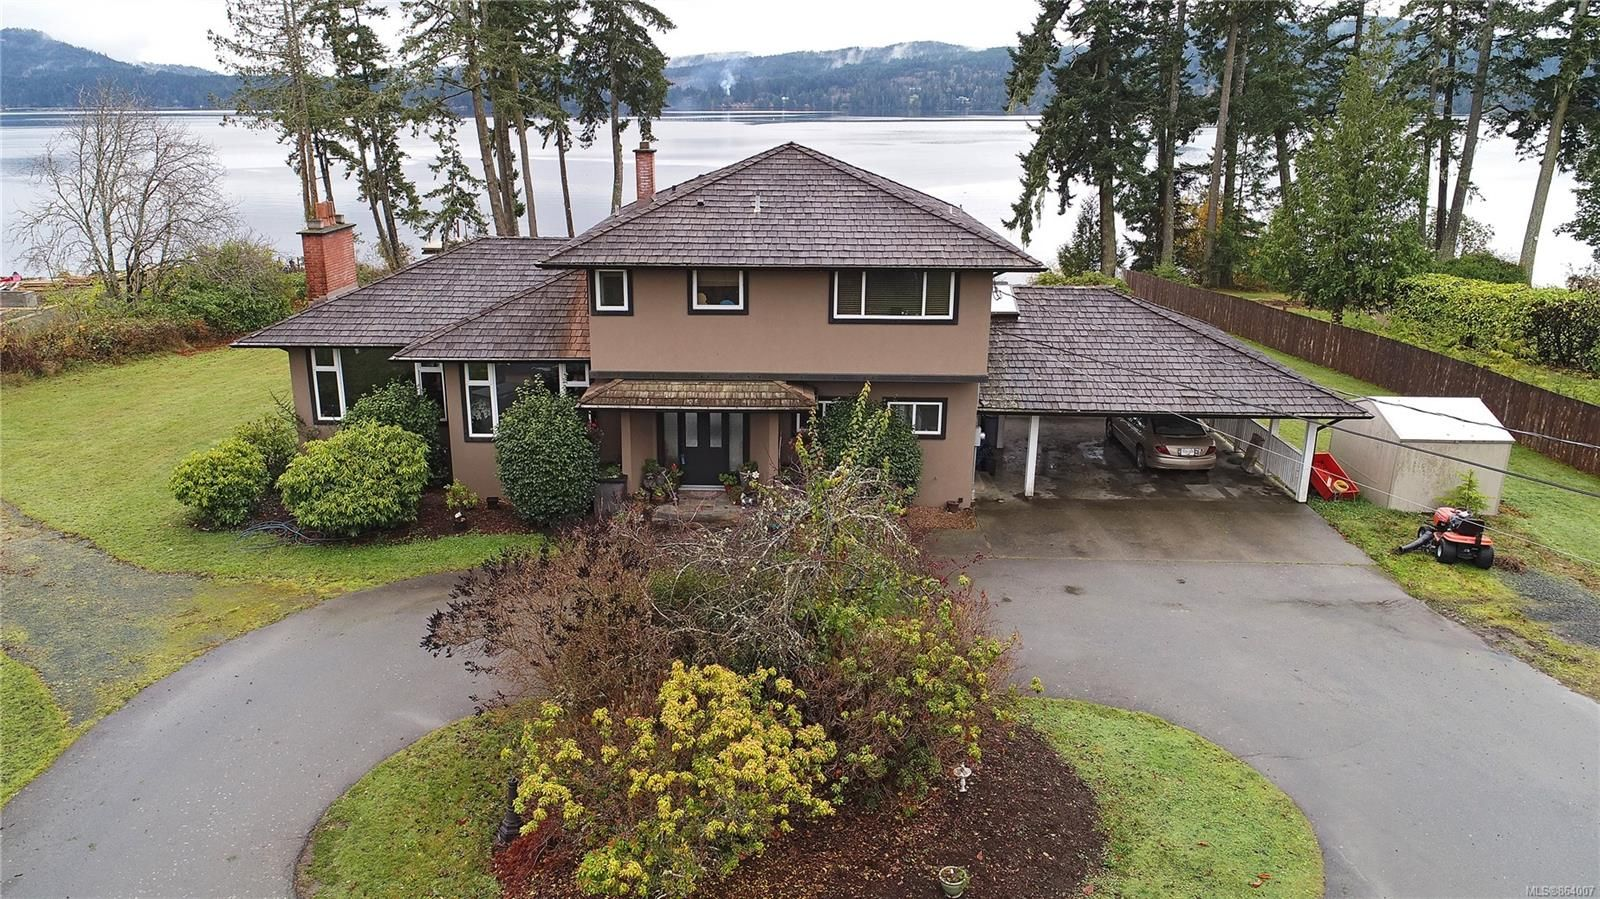 Photo 29: Photos: 5697 Sooke Rd in : Sk Saseenos House for sale (Sooke)  : MLS®# 864007